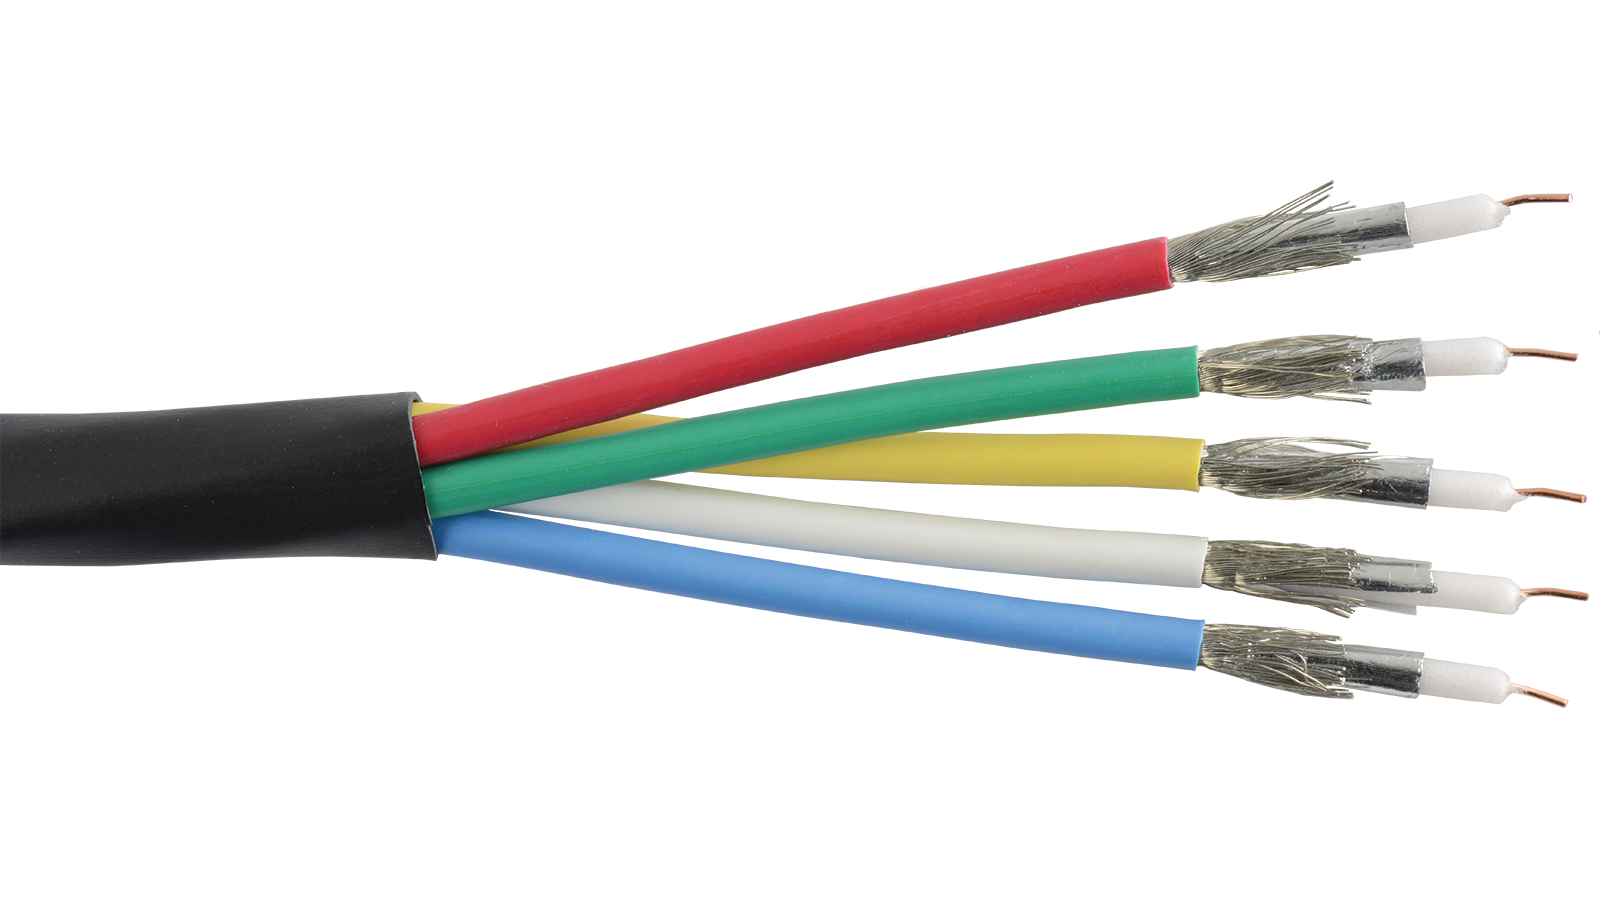 RGB5C 25 CMP rgb5c 25 cmp rgb 5 x 25 awg solid mini high resolution coaxial Cat5 Ethernet Cable Wiring Diagram at virtualis.co